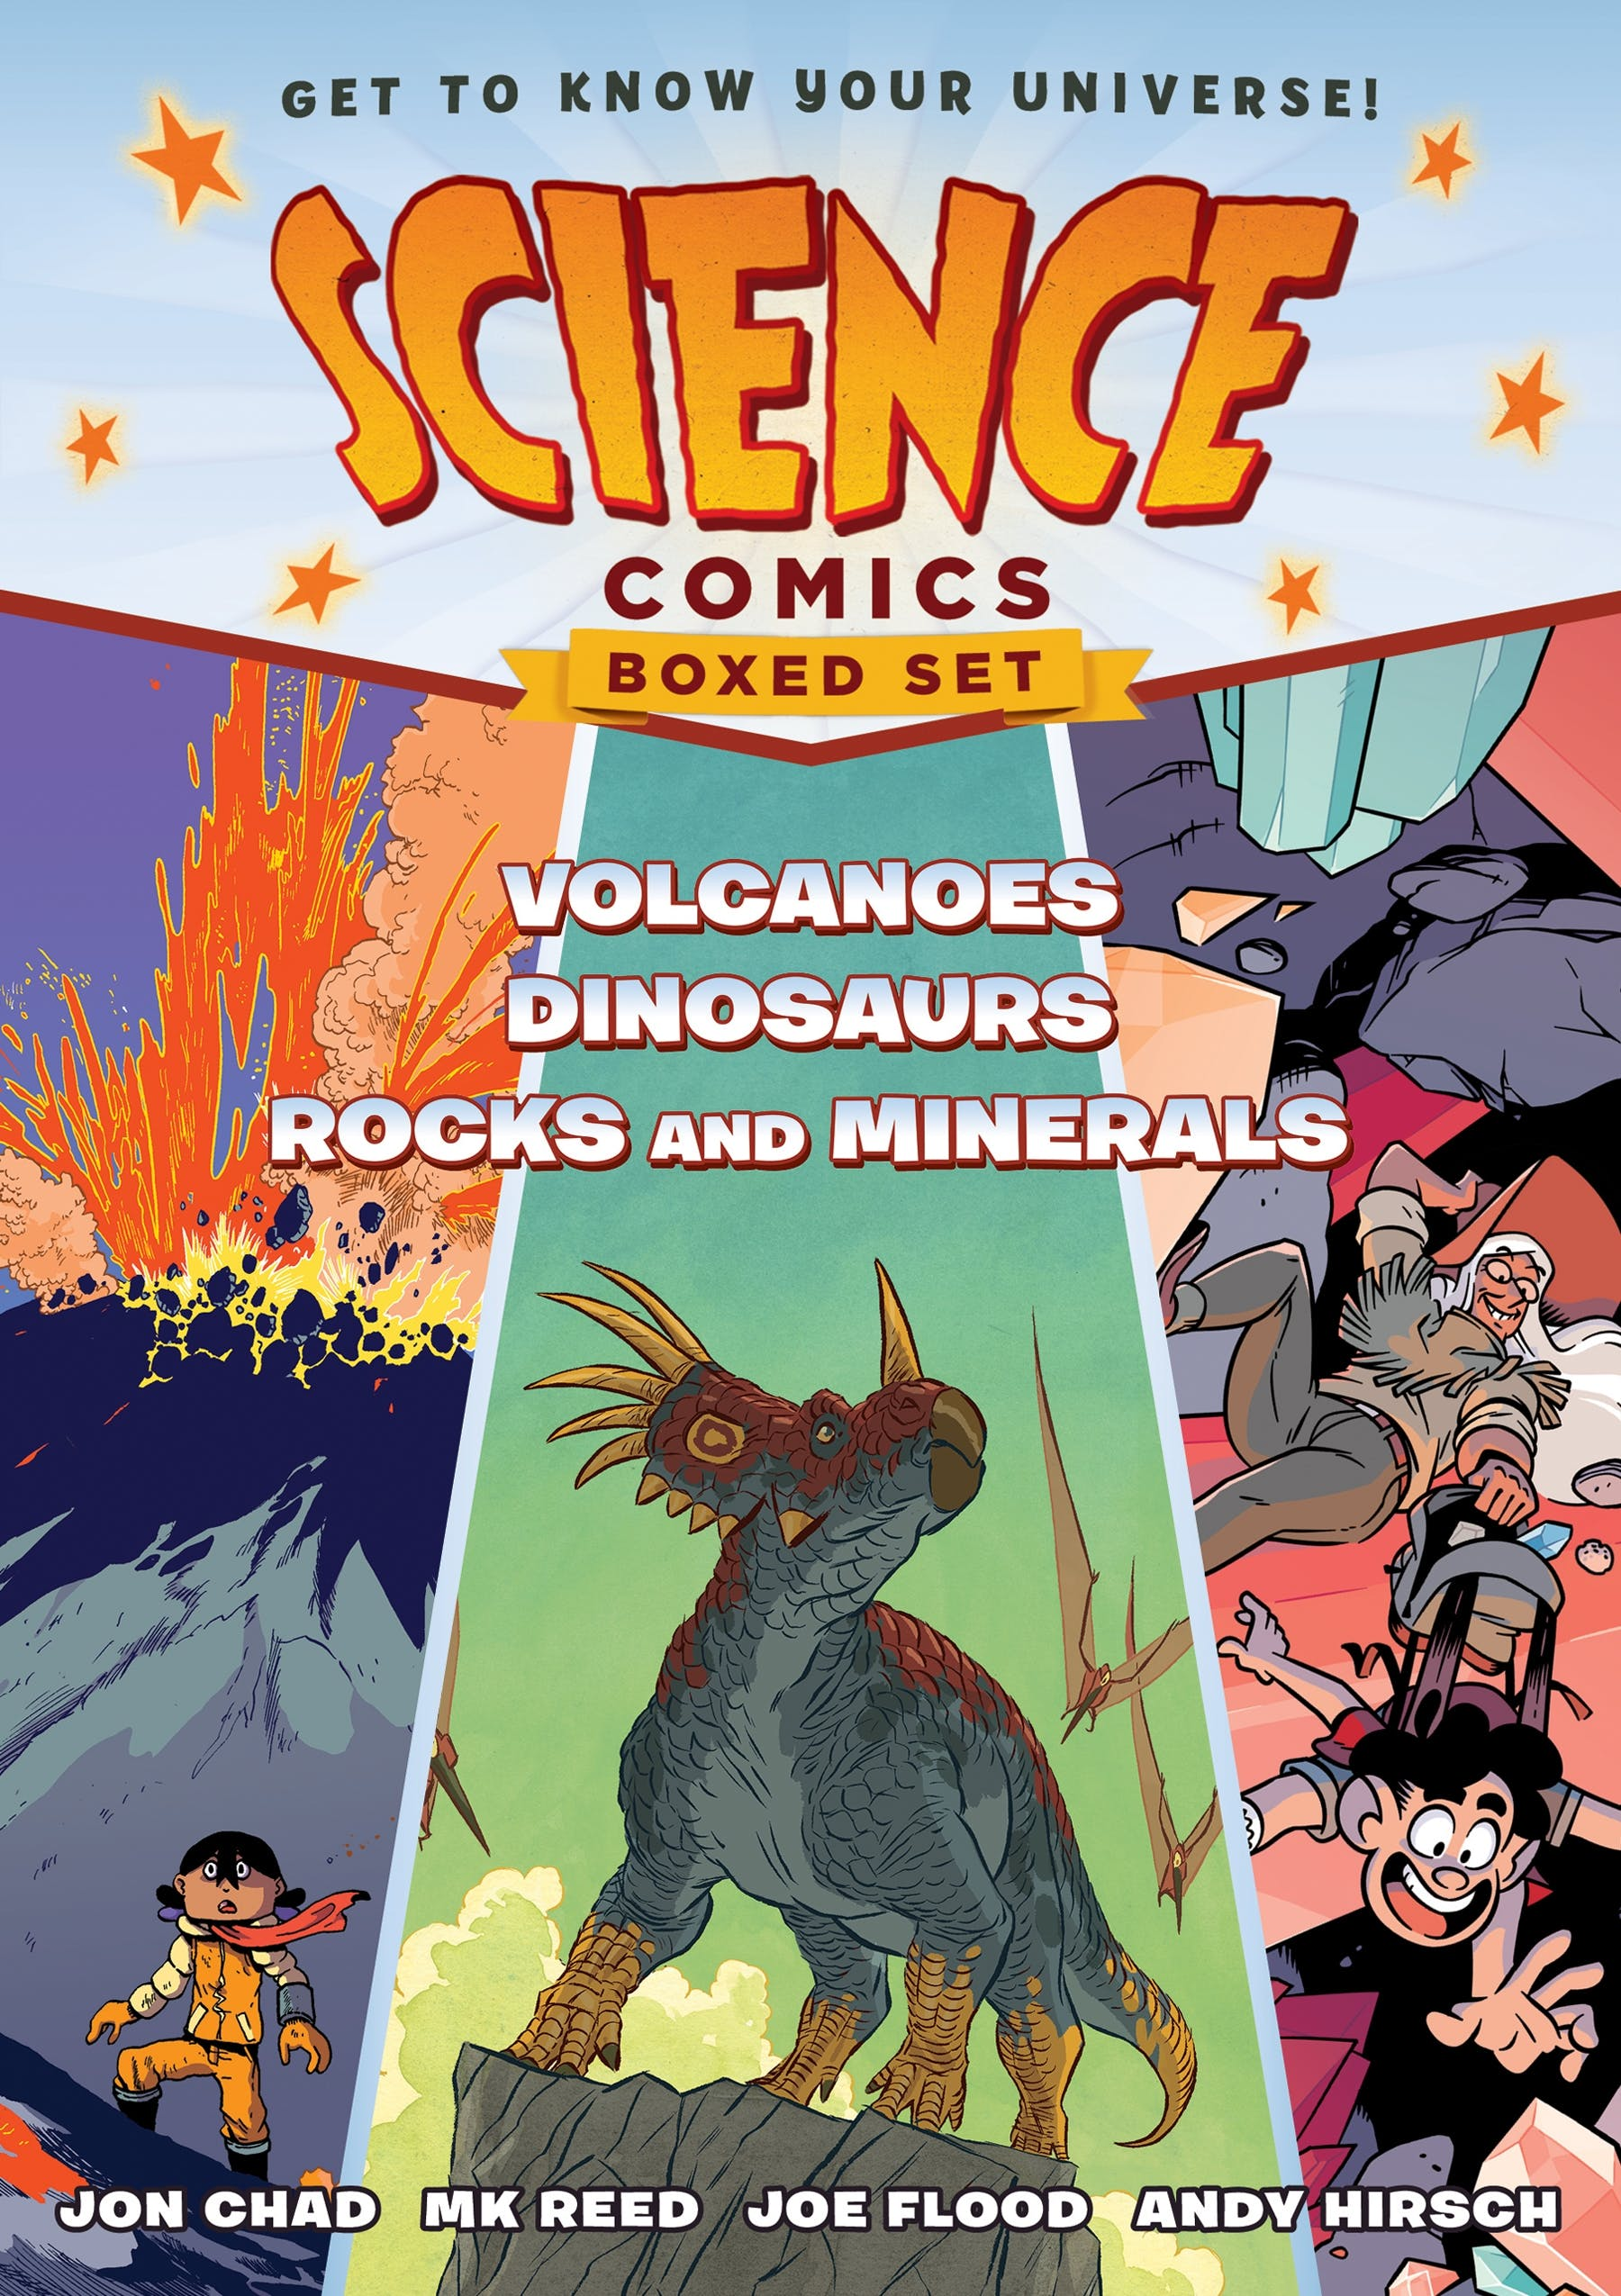 Image of Science Comics Boxed Set: Volcanoes, Dinosaurs, and Rocks and Minerals